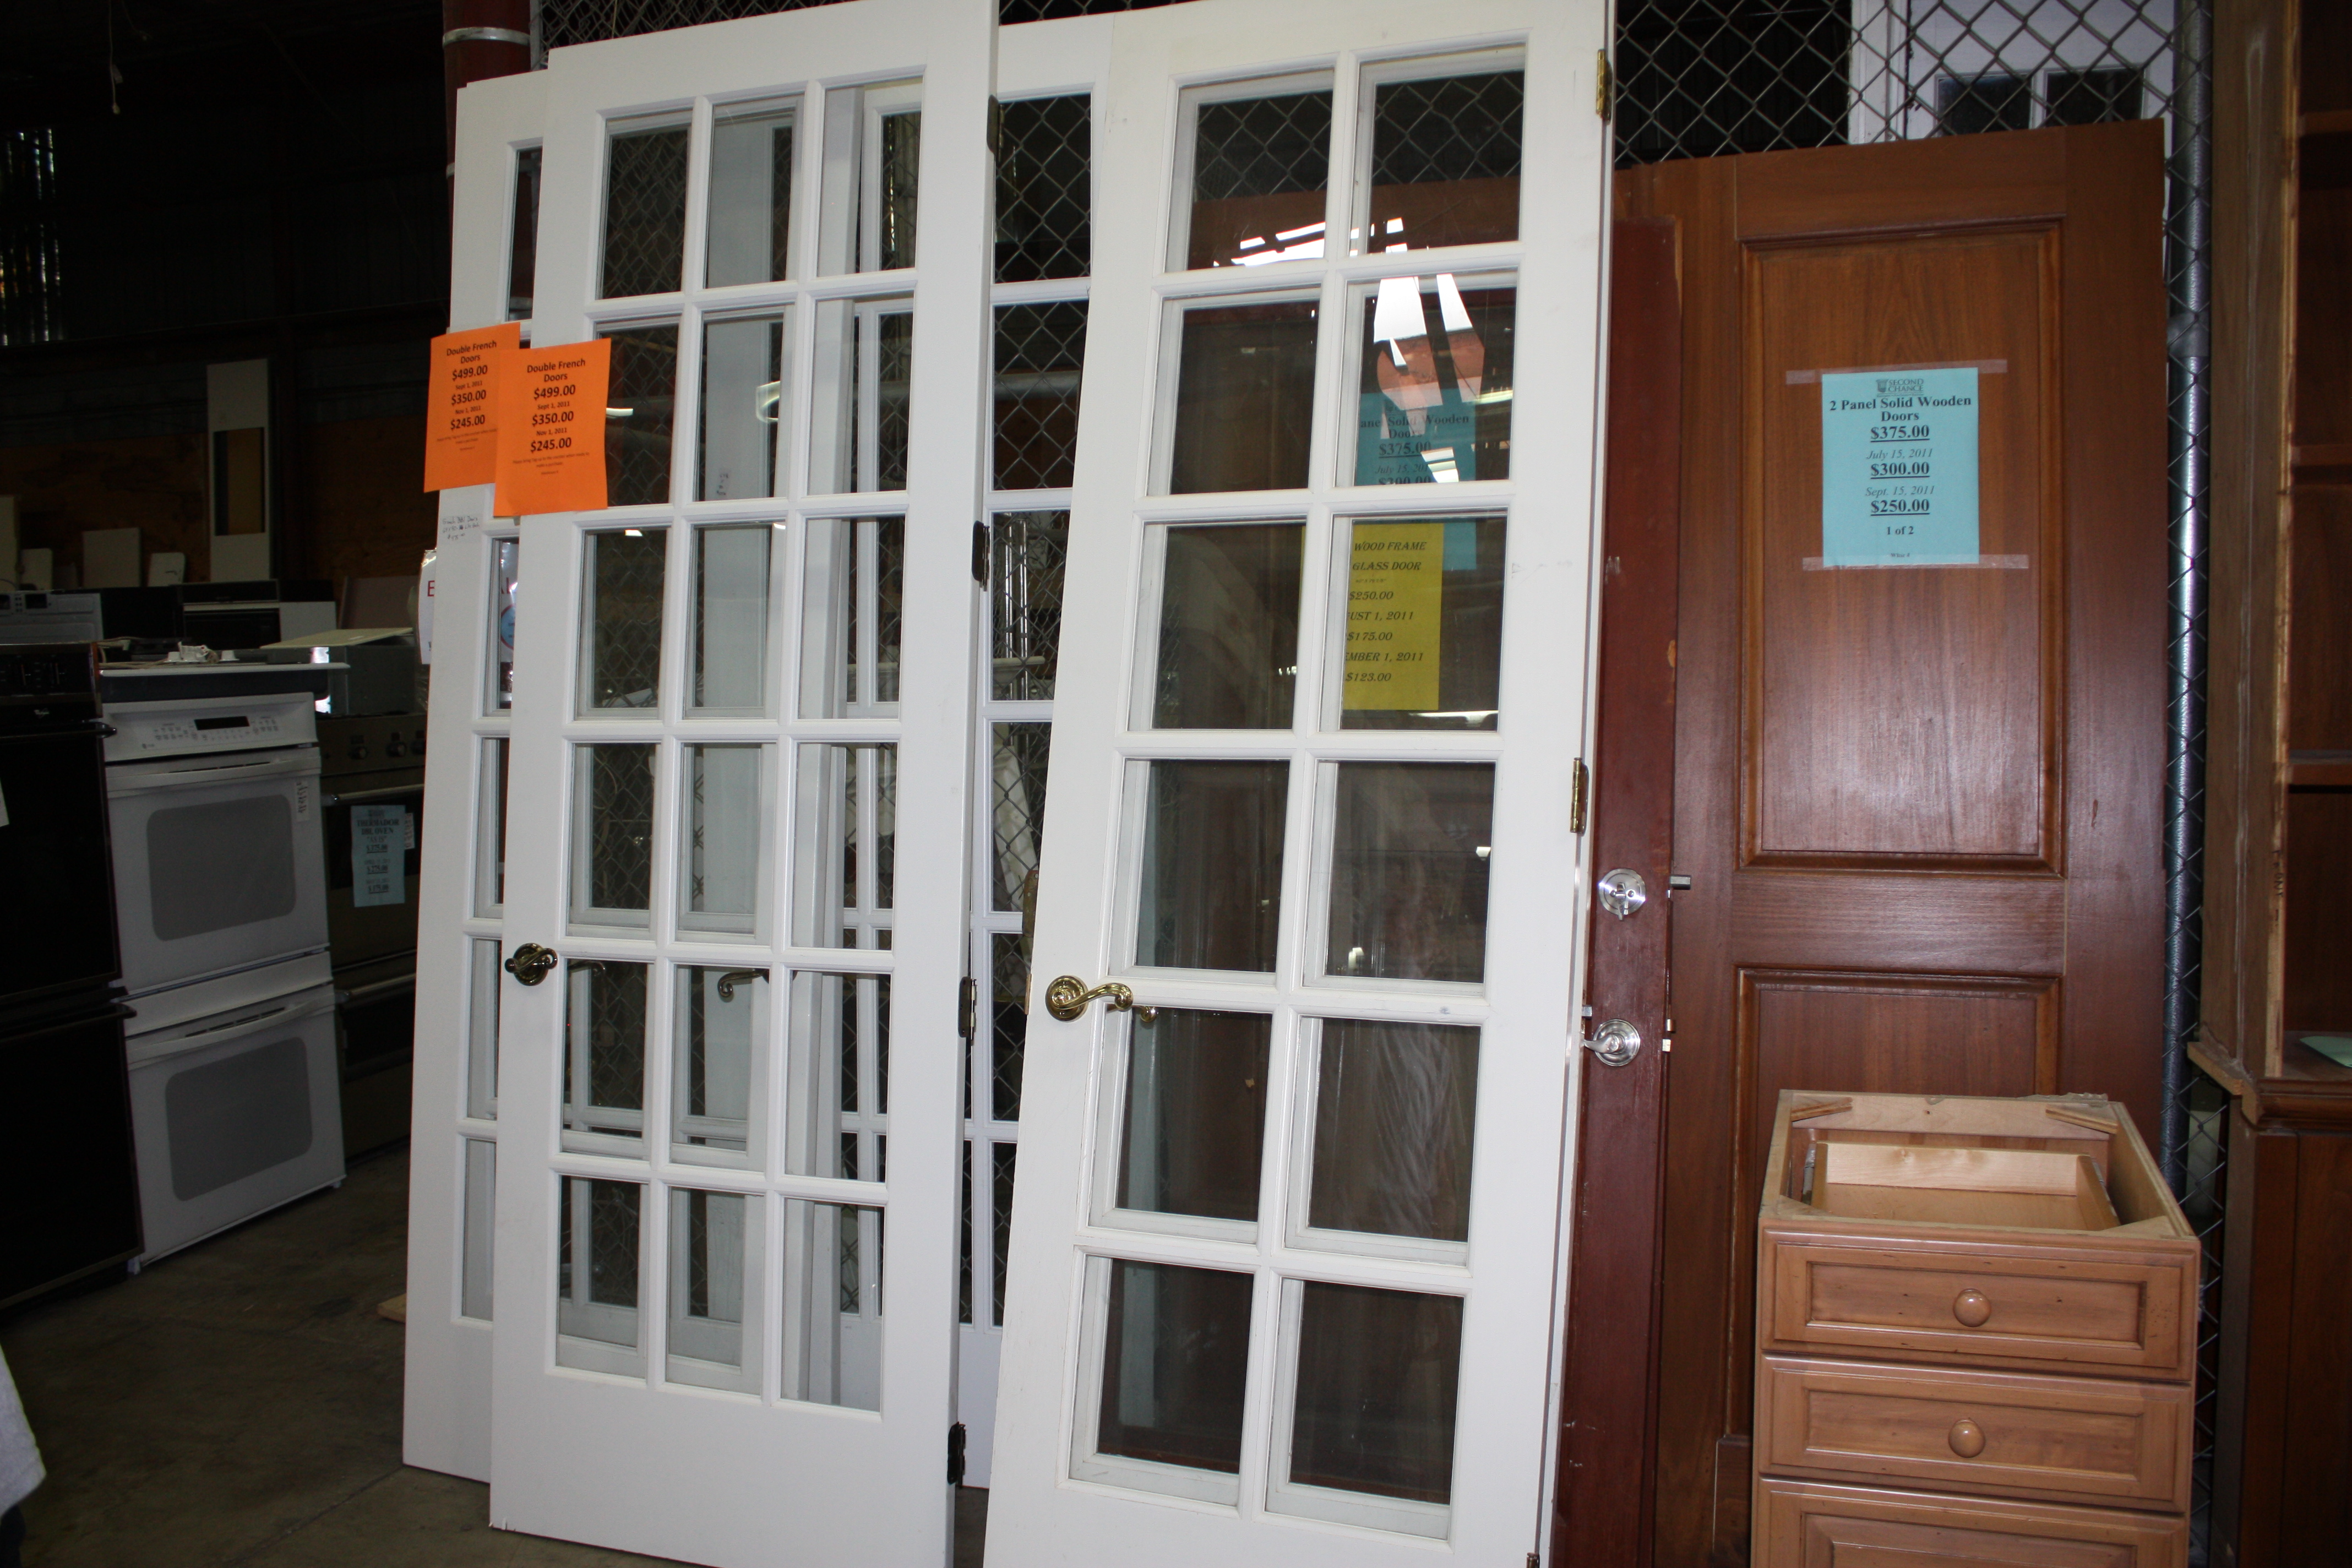 Awesome French doors. & Prime Salvage u2013 Letu0027s Face the Music pezcame.com